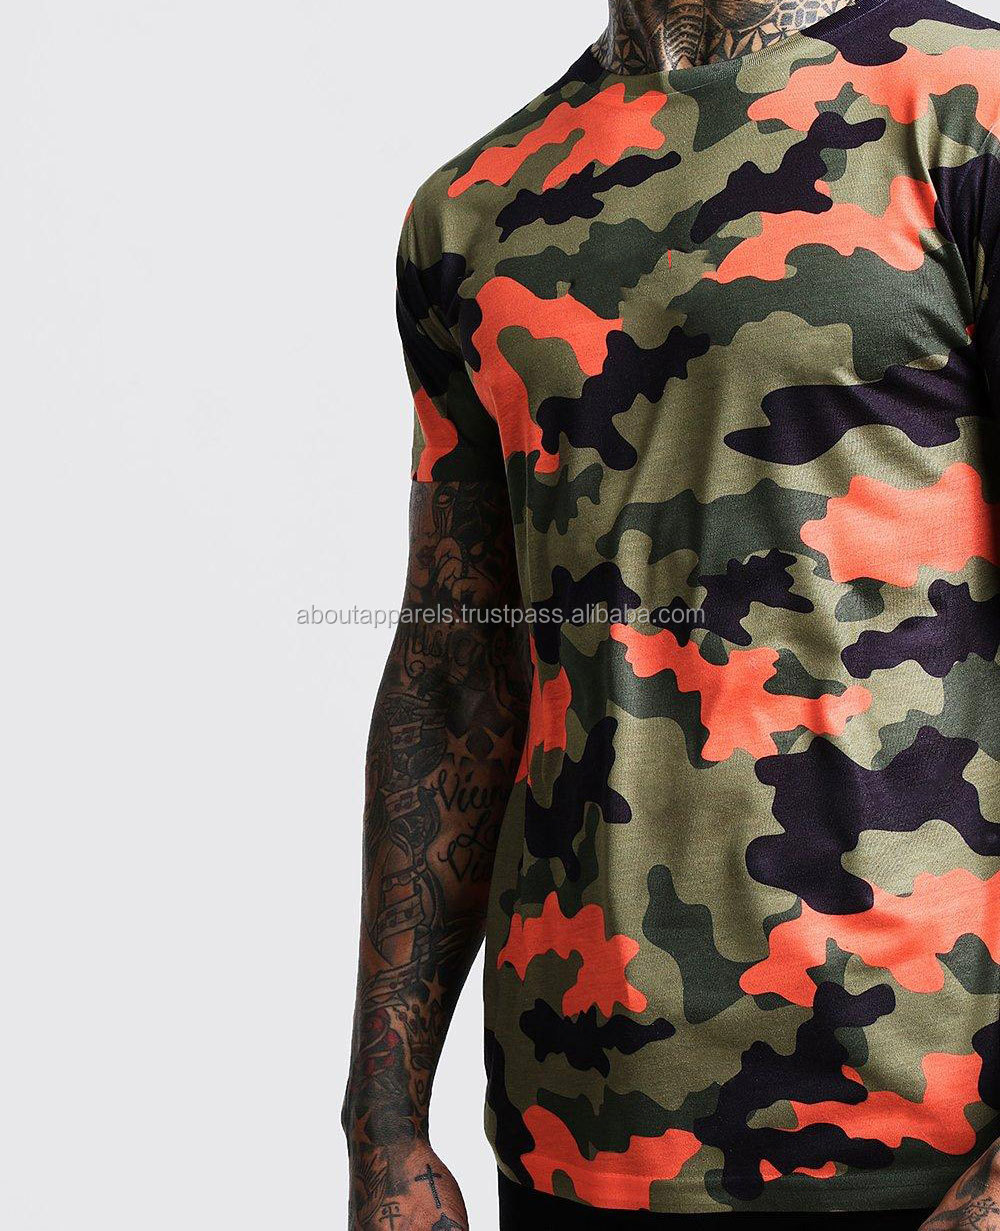 Stripes Short Sleeve T-Shirt 2018 Summer Men's Casual Tops Tees Hip Hop Fashion Male ,Camo Printed T Shirt